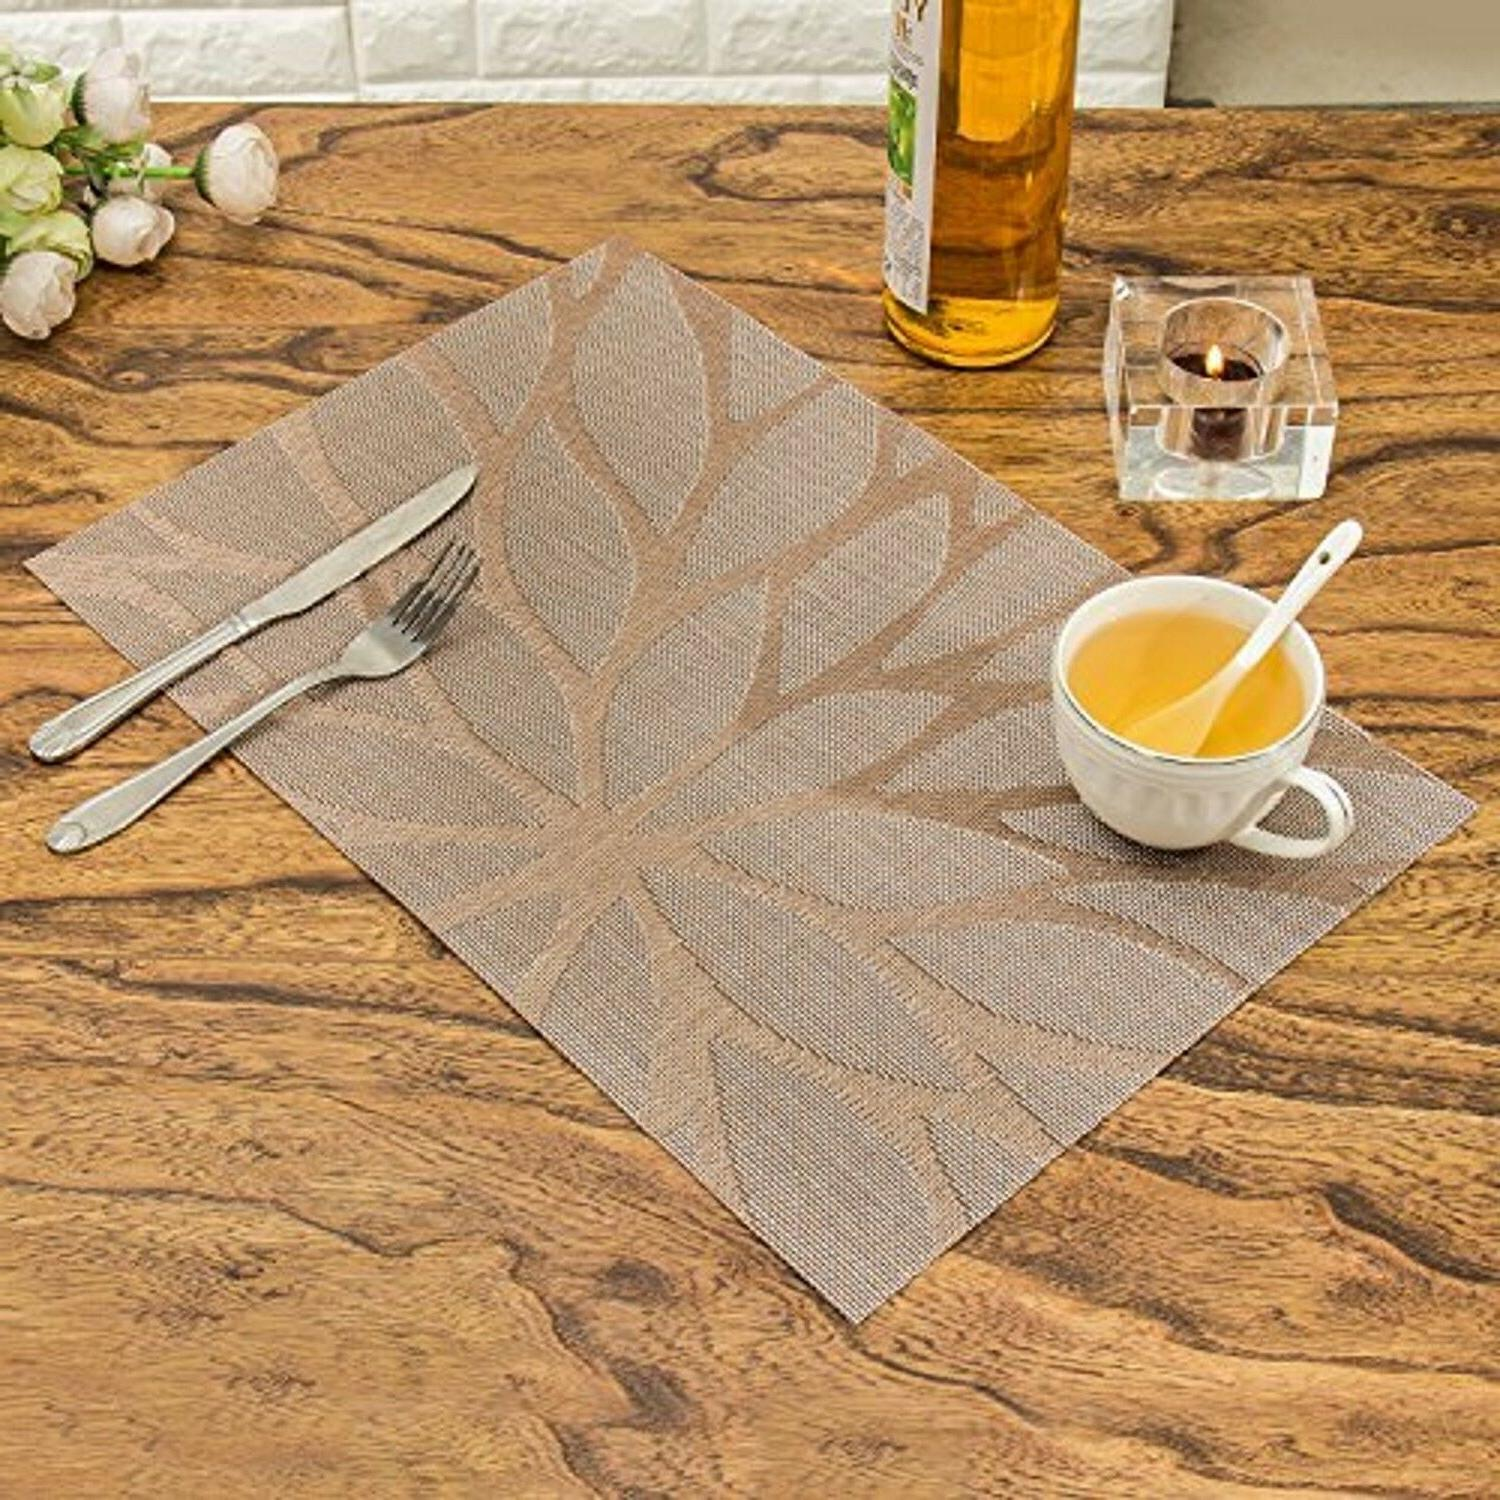 Set of Kitchen Dining Table Heat Woven